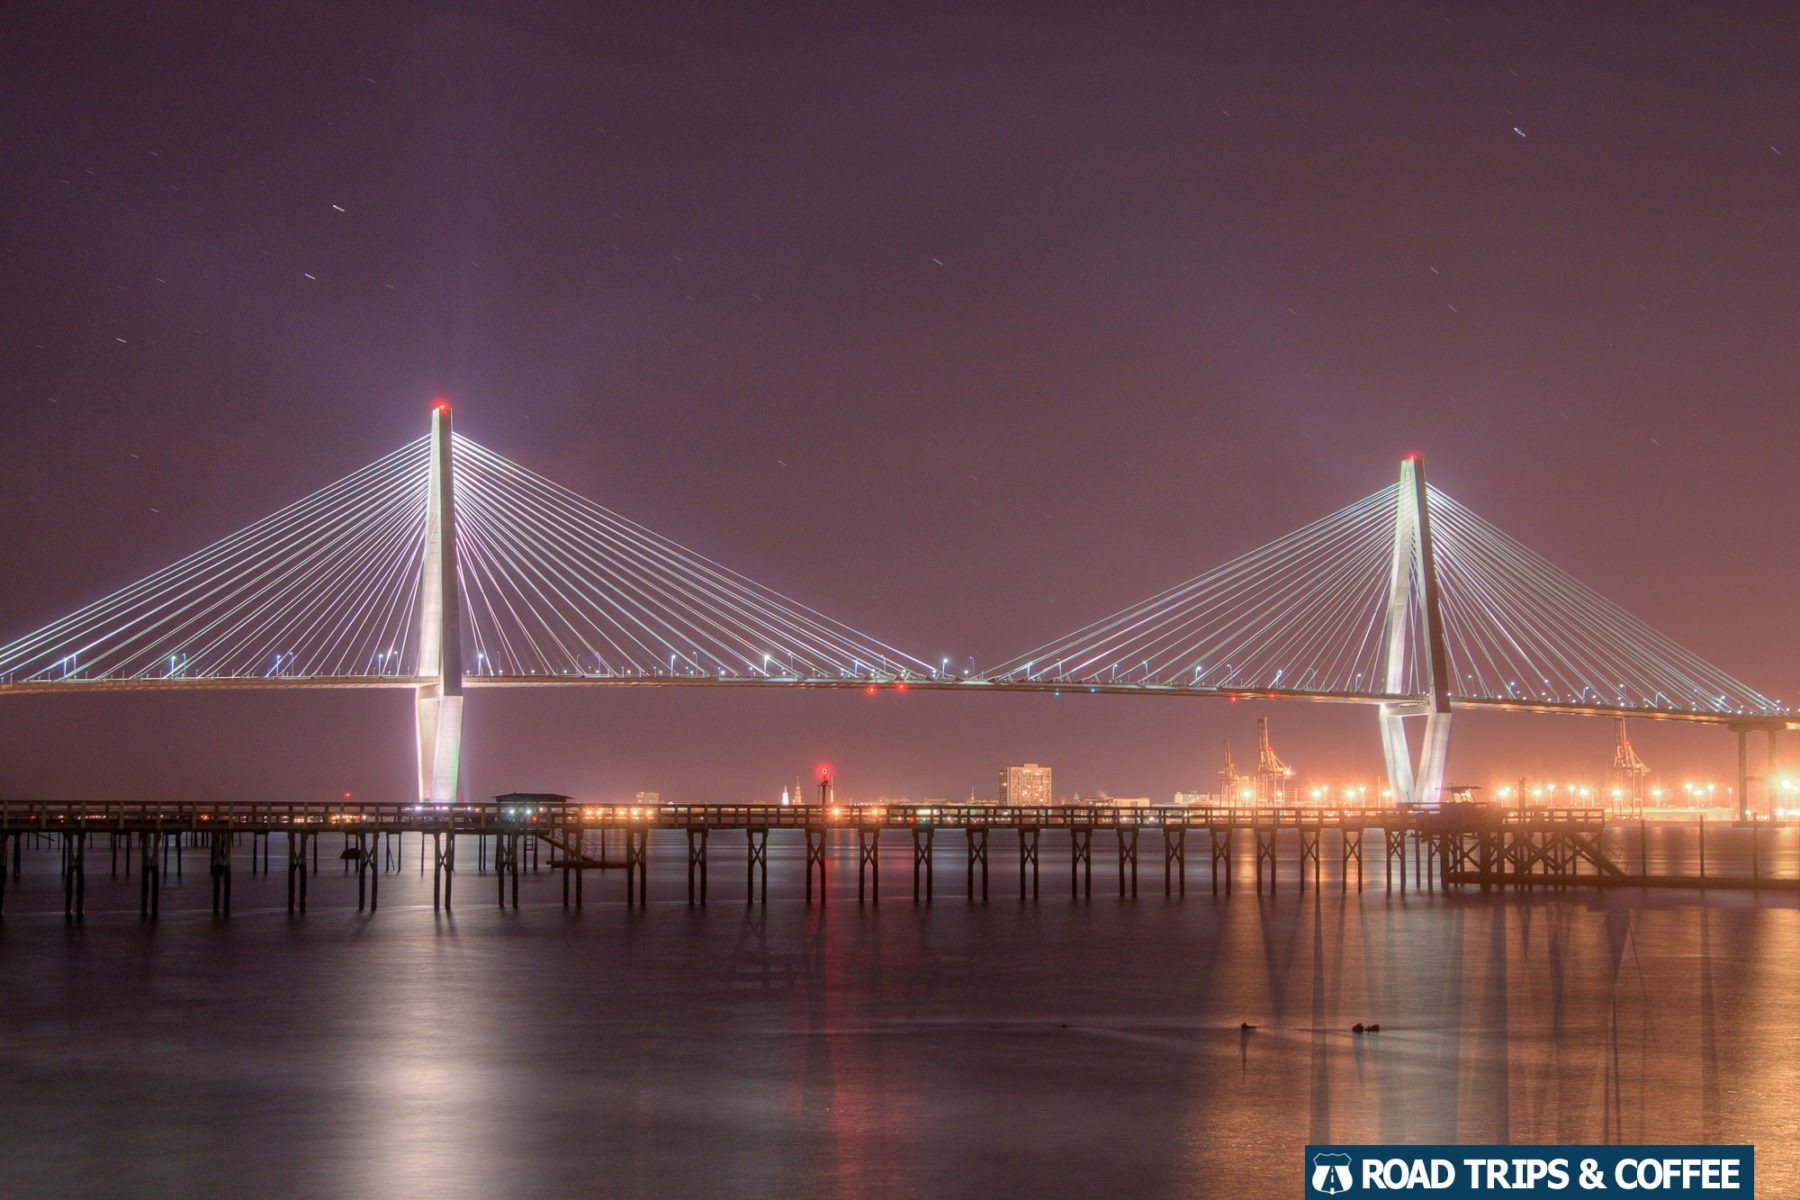 The Arthur Ravenel Junior Bridge lights up the night sky across the harbor in Charleston, South Carolina